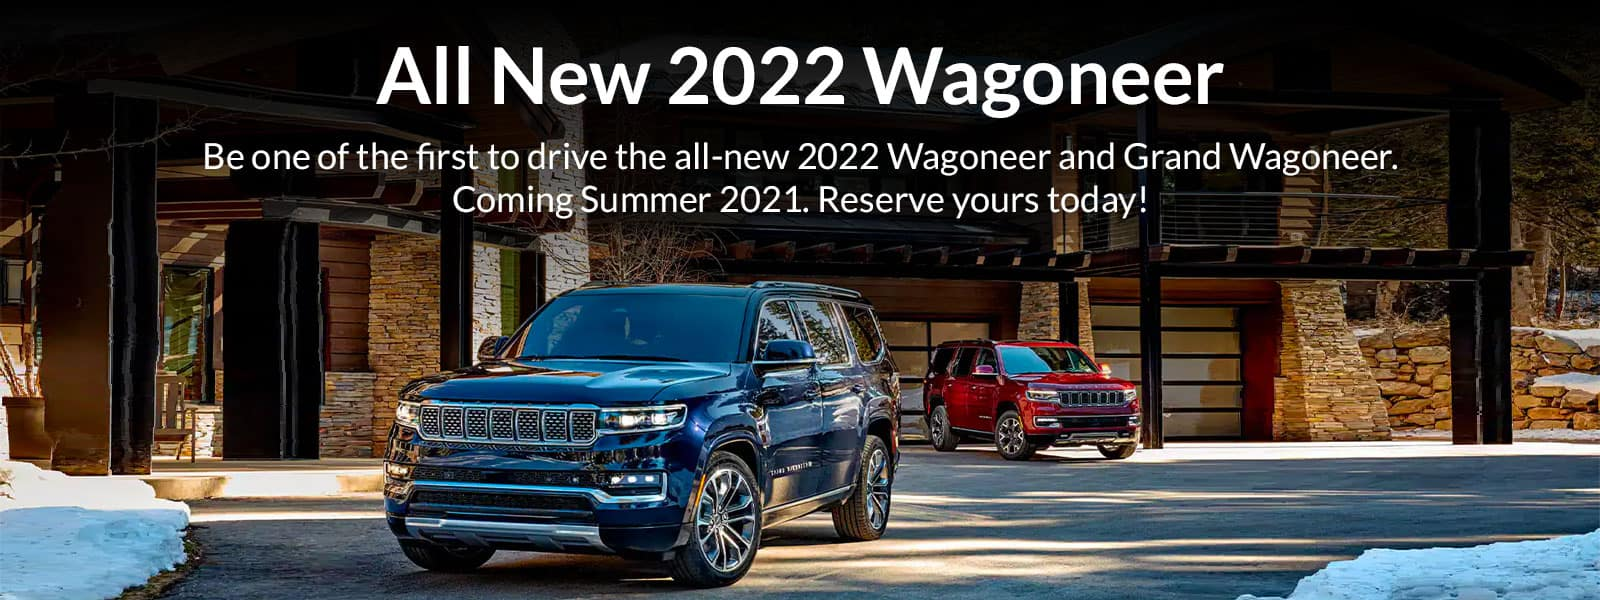 All New 2022 Wagoneer Be one of the first to drive the all-new 2022 Wagoneer and Grand Wagoneer. Coming Summer 2021. Reserve yours today!